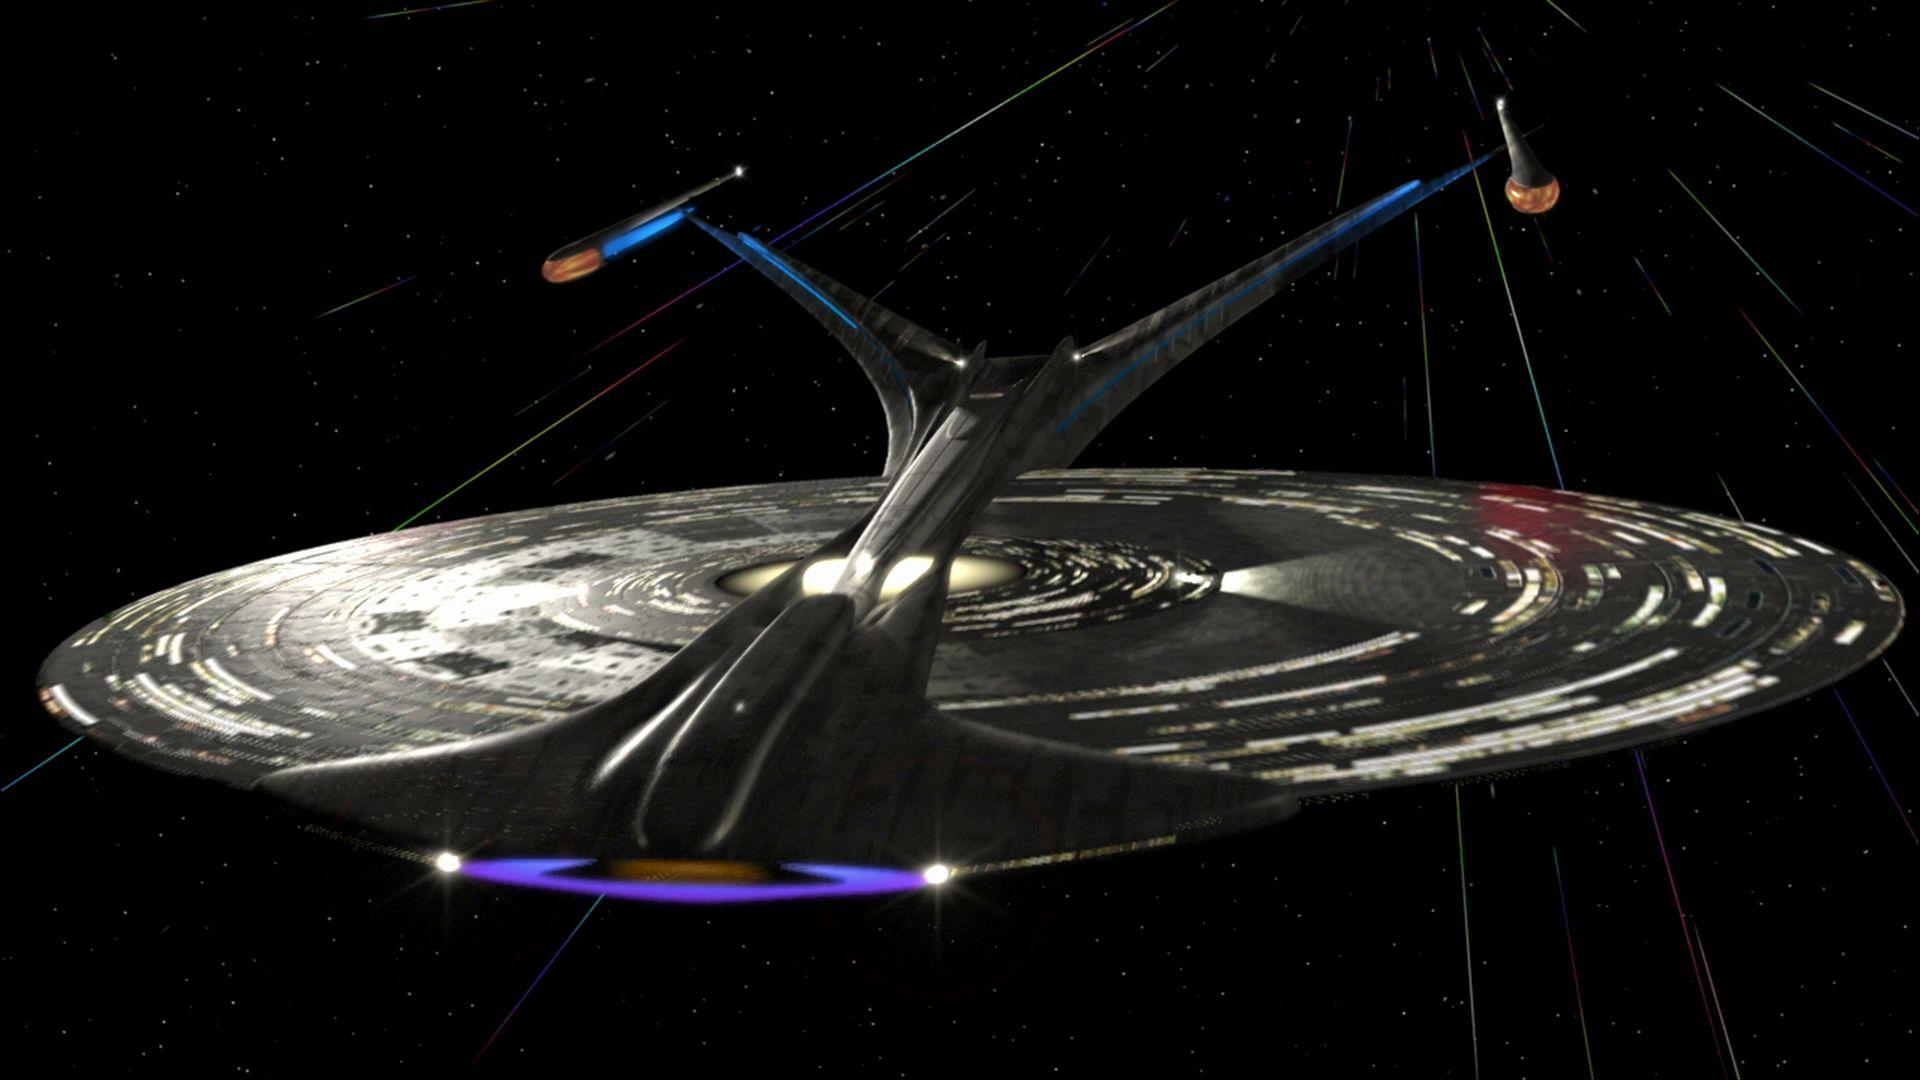 Uss enterprise (ncc-1701-j)